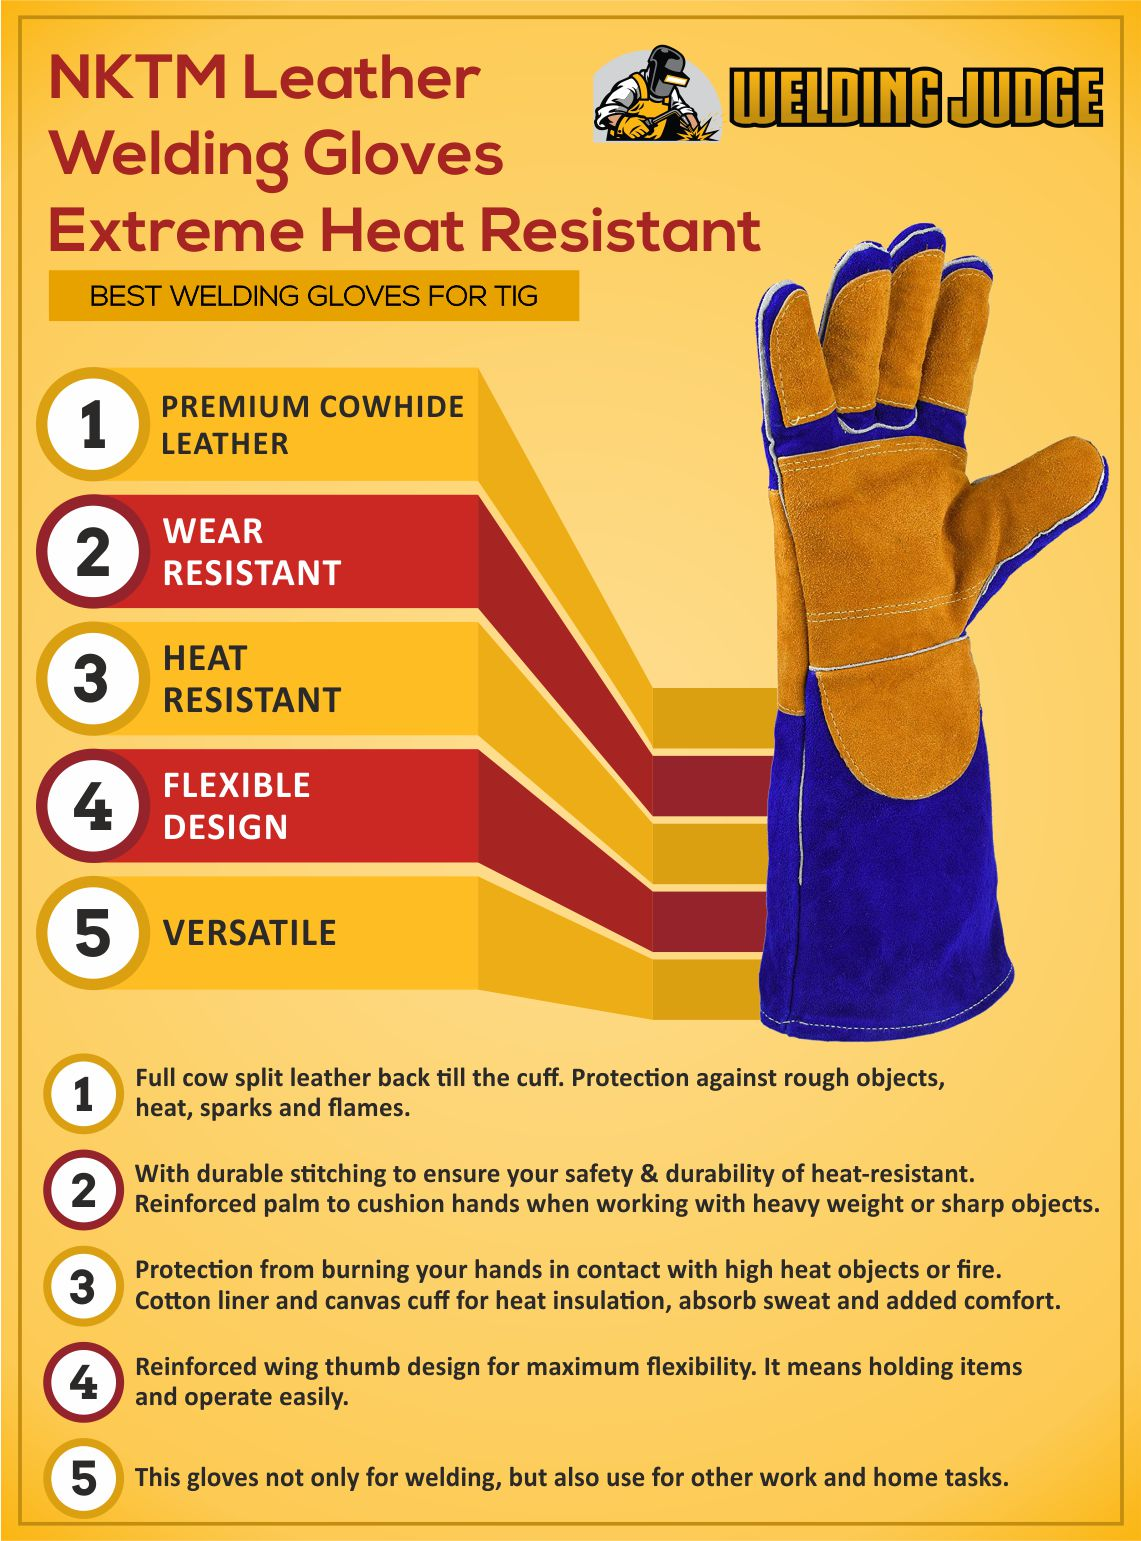 NKTM Leather Welding Gloves Infographic Review